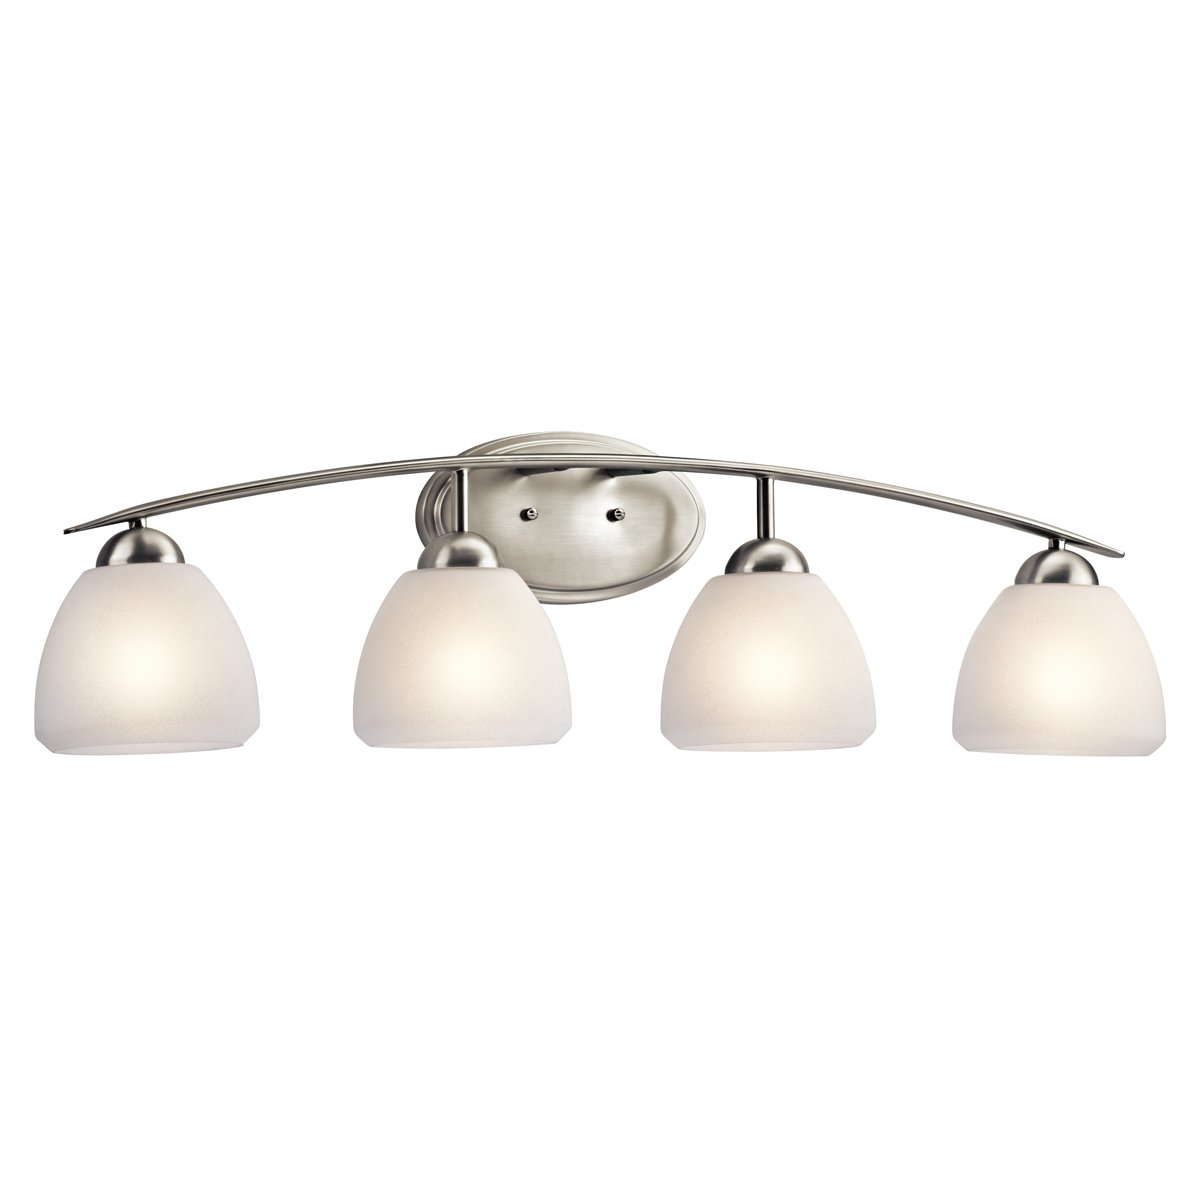 Kichler 45120ni four light bath vanity lighting fixtures amazon aloadofball Image collections